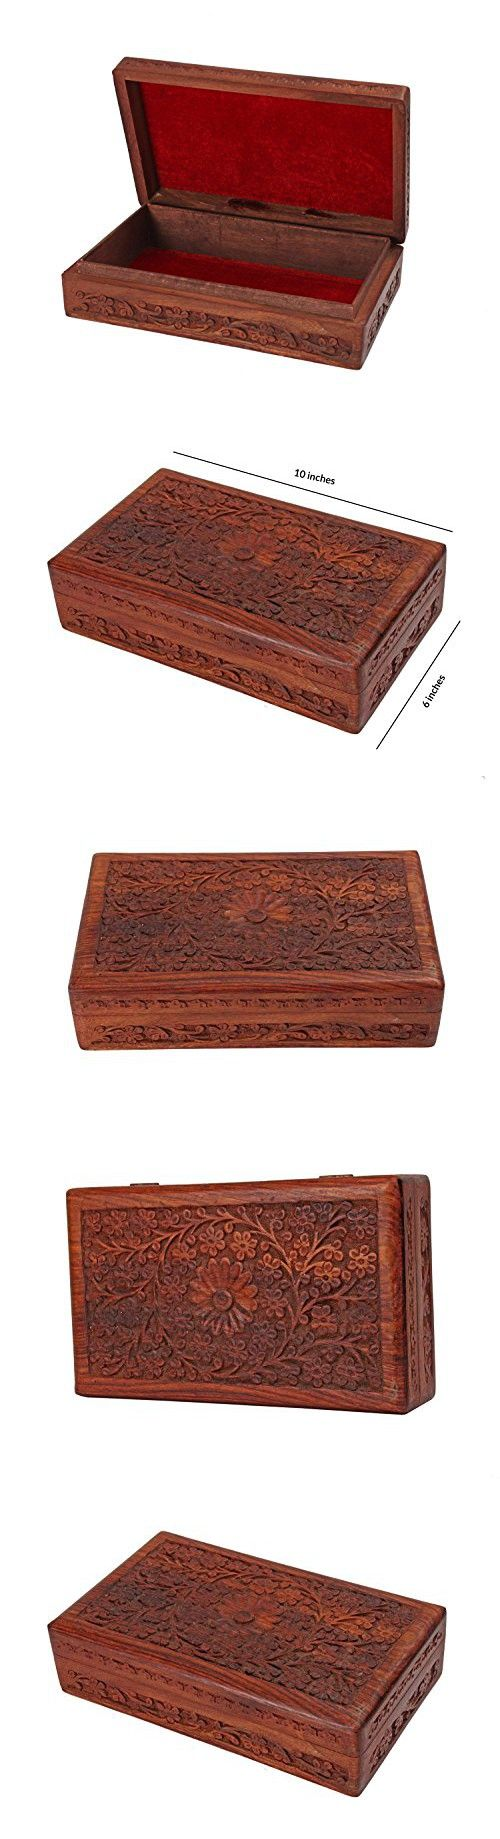 "Rakhi Gift for Sister Intricate Wooden Jewelry Box Organizer - 10 x 6"" Handcrafted - Multipurpose Keepsake Storage Chest"